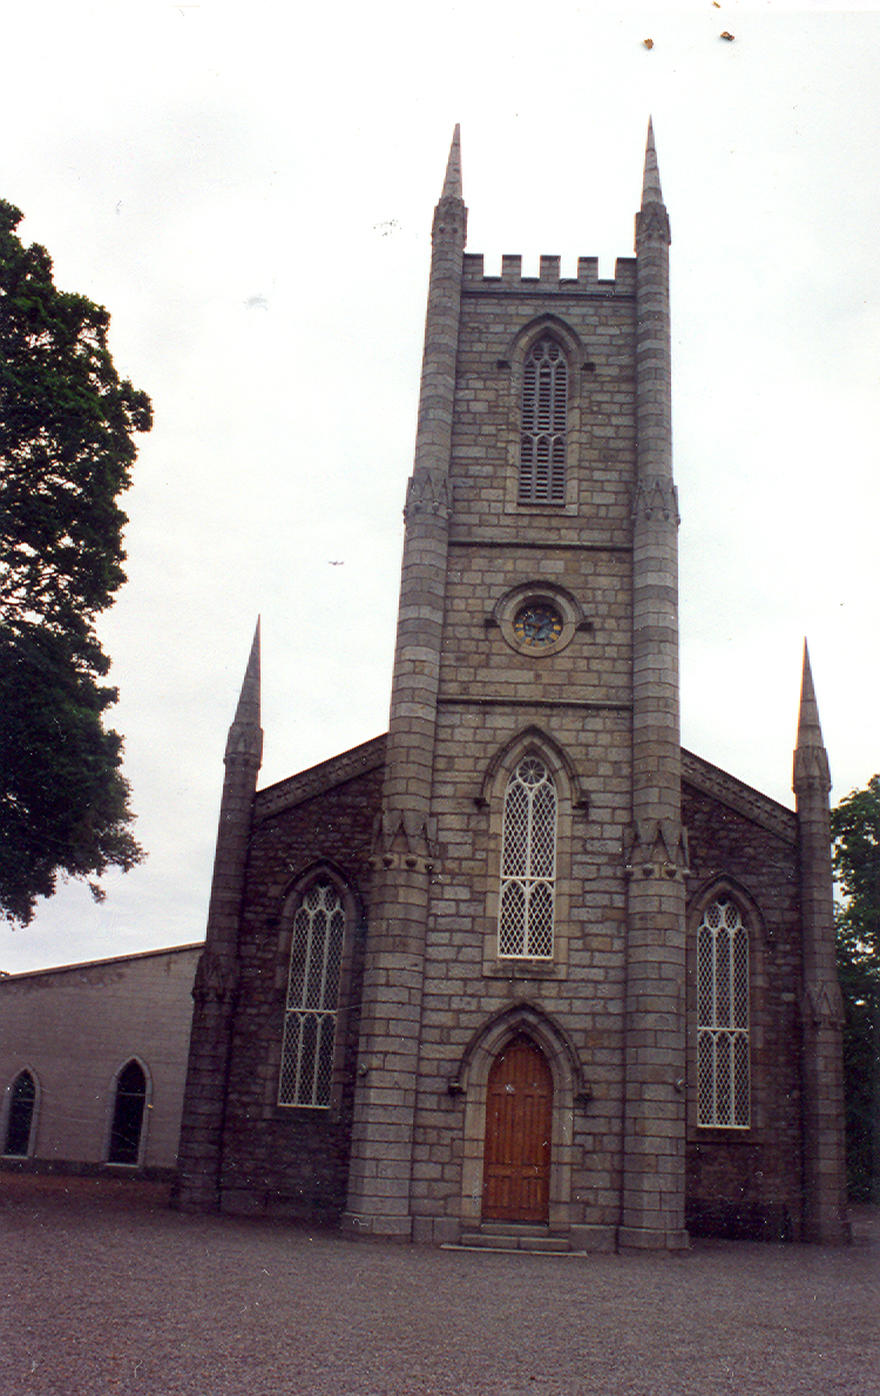 Crinken Church, Shankill in the parish of Crinken